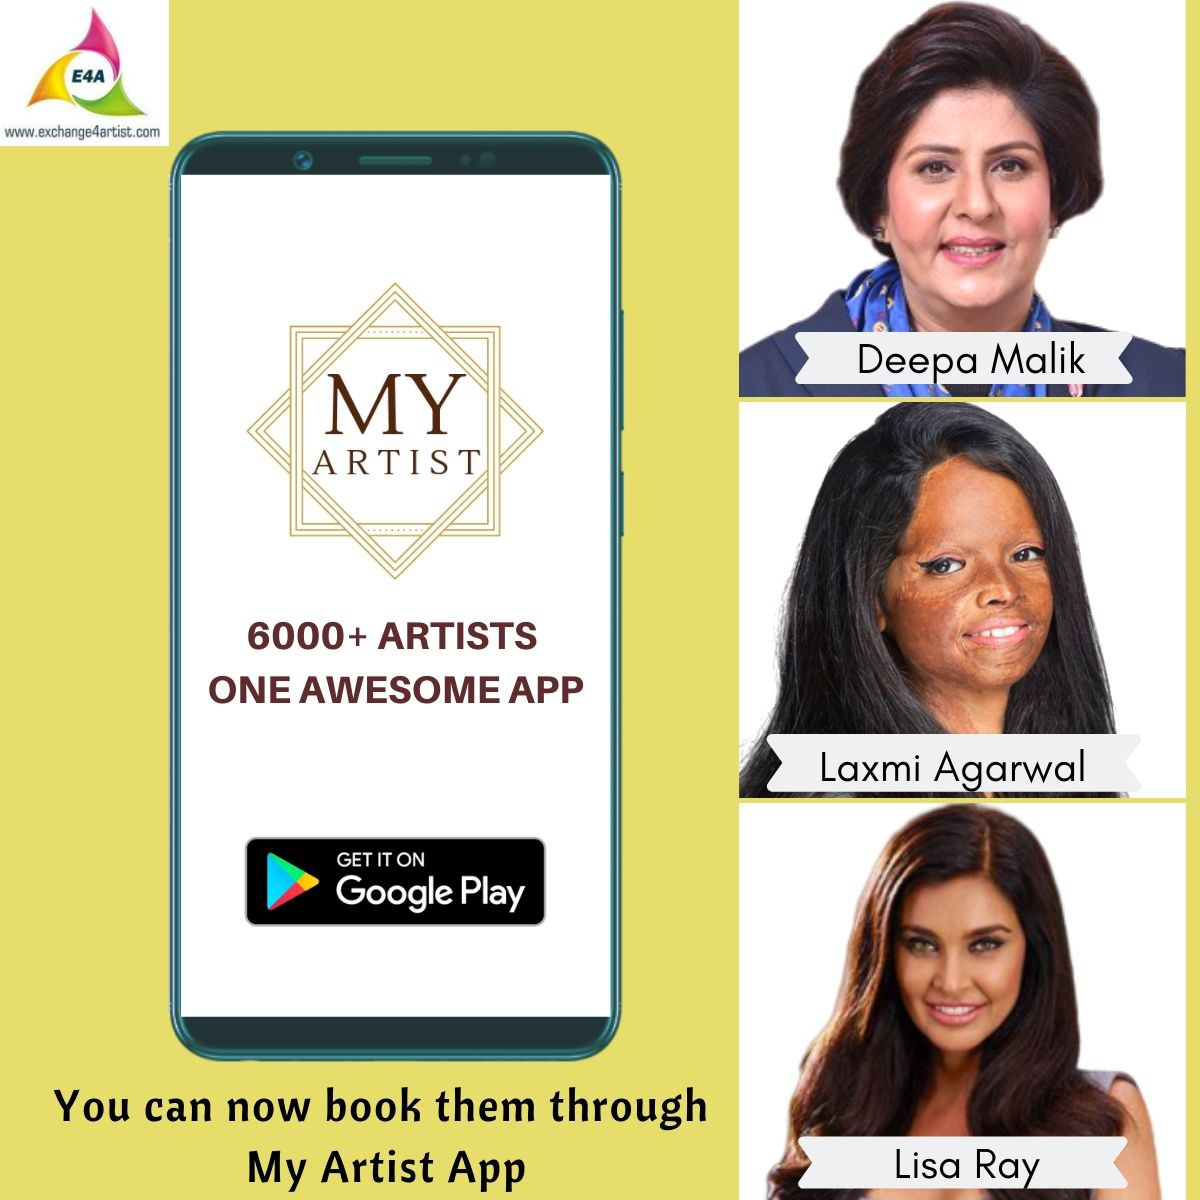 Motivational Speakers available for Women Day's Events. Book them now. DM us for more info or visit the link in bio to connect with us.  #exchange4artist #myartistapp #artistmanagement #artistmanagementlife #events #eventlife #artist #artistlife #artistofthedapic.twitter.com/dKUdF8C84i